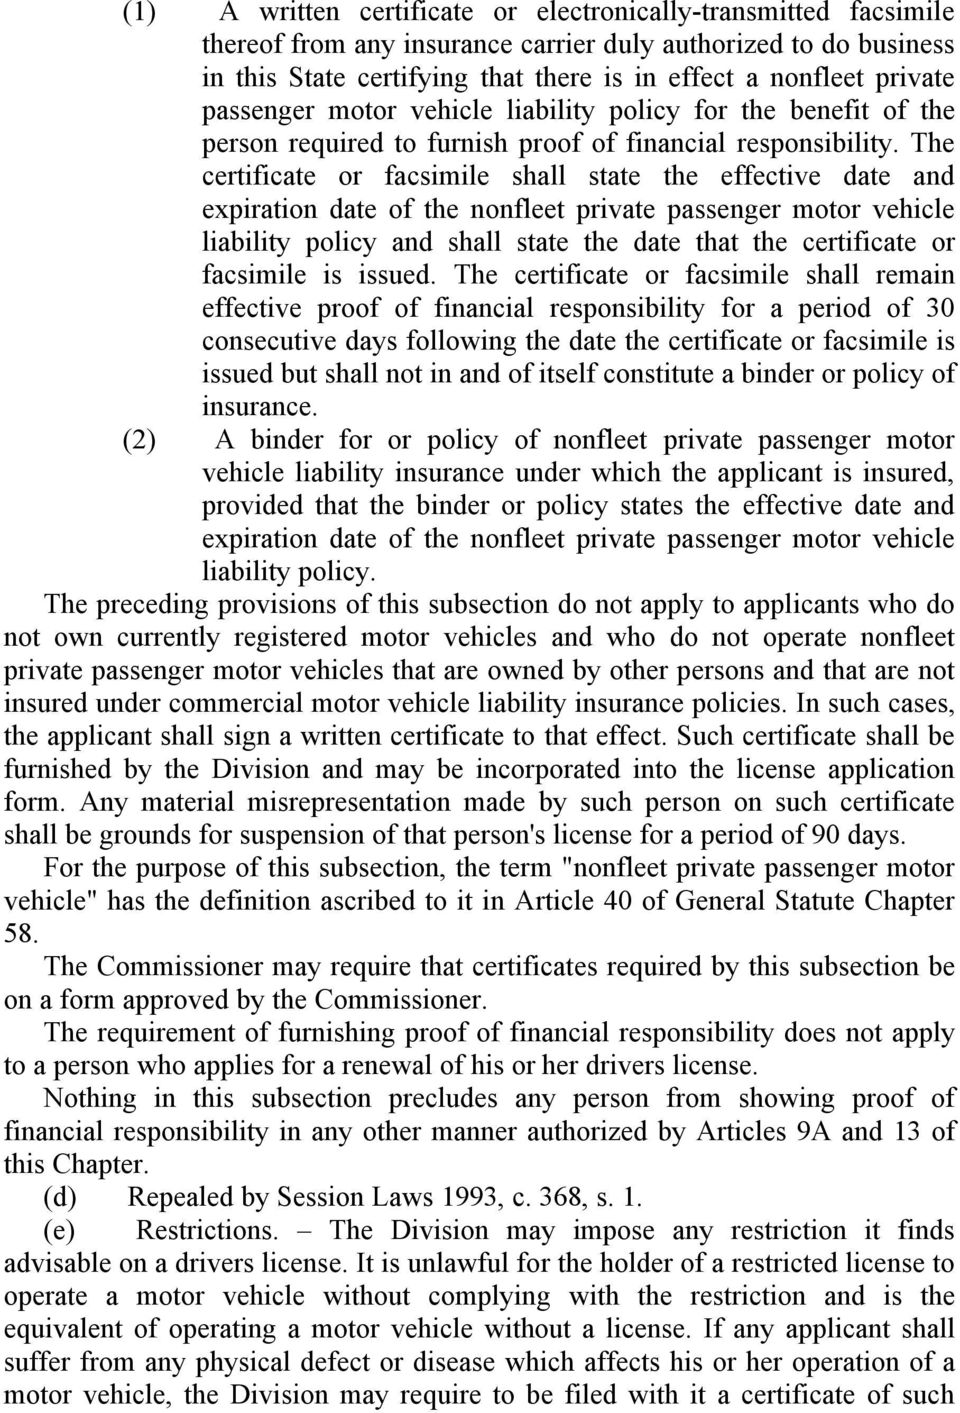 The certificate or facsimile shall state the effective date and expiration date of the nonfleet private passenger motor vehicle liability policy and shall state the date that the certificate or